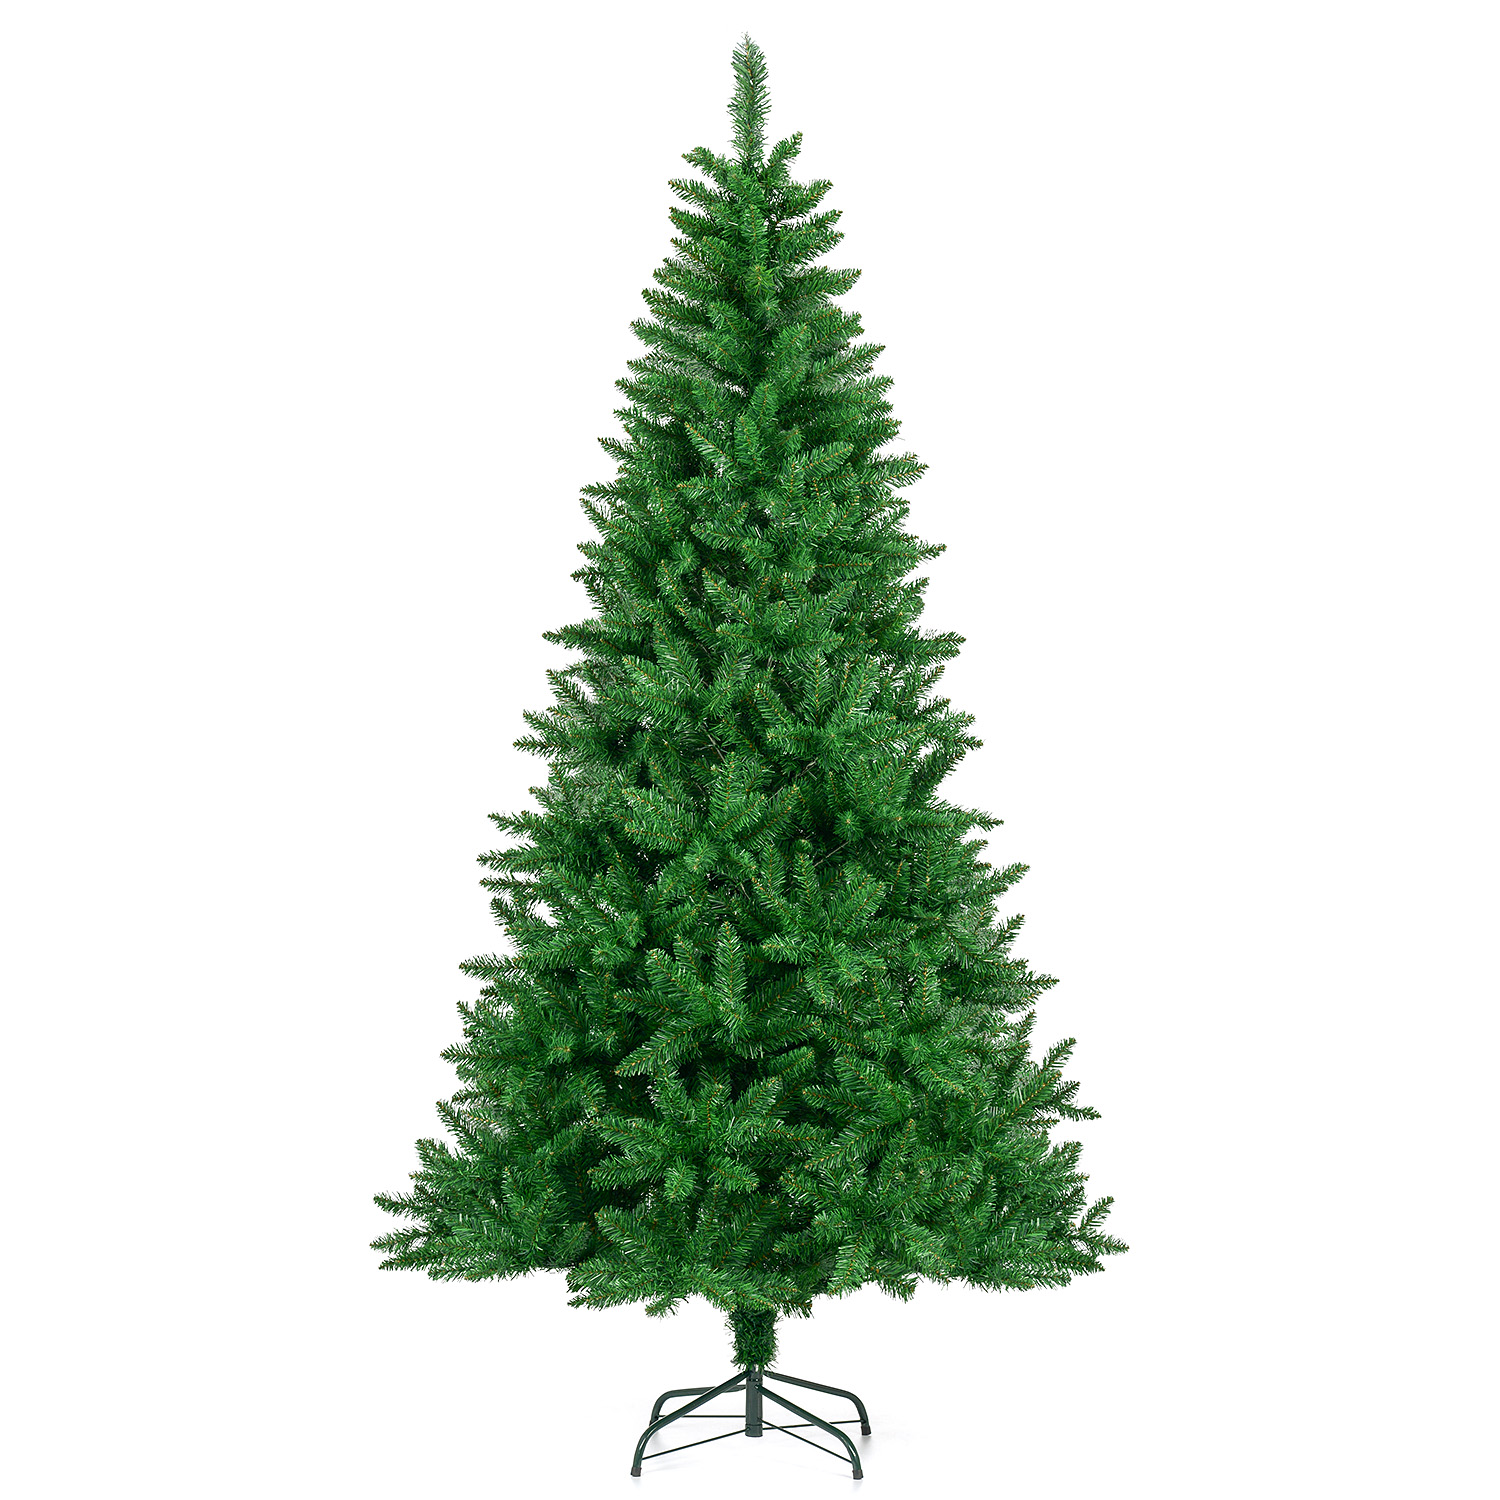 Image of Artificial Spruce Christmas Tree 7ft